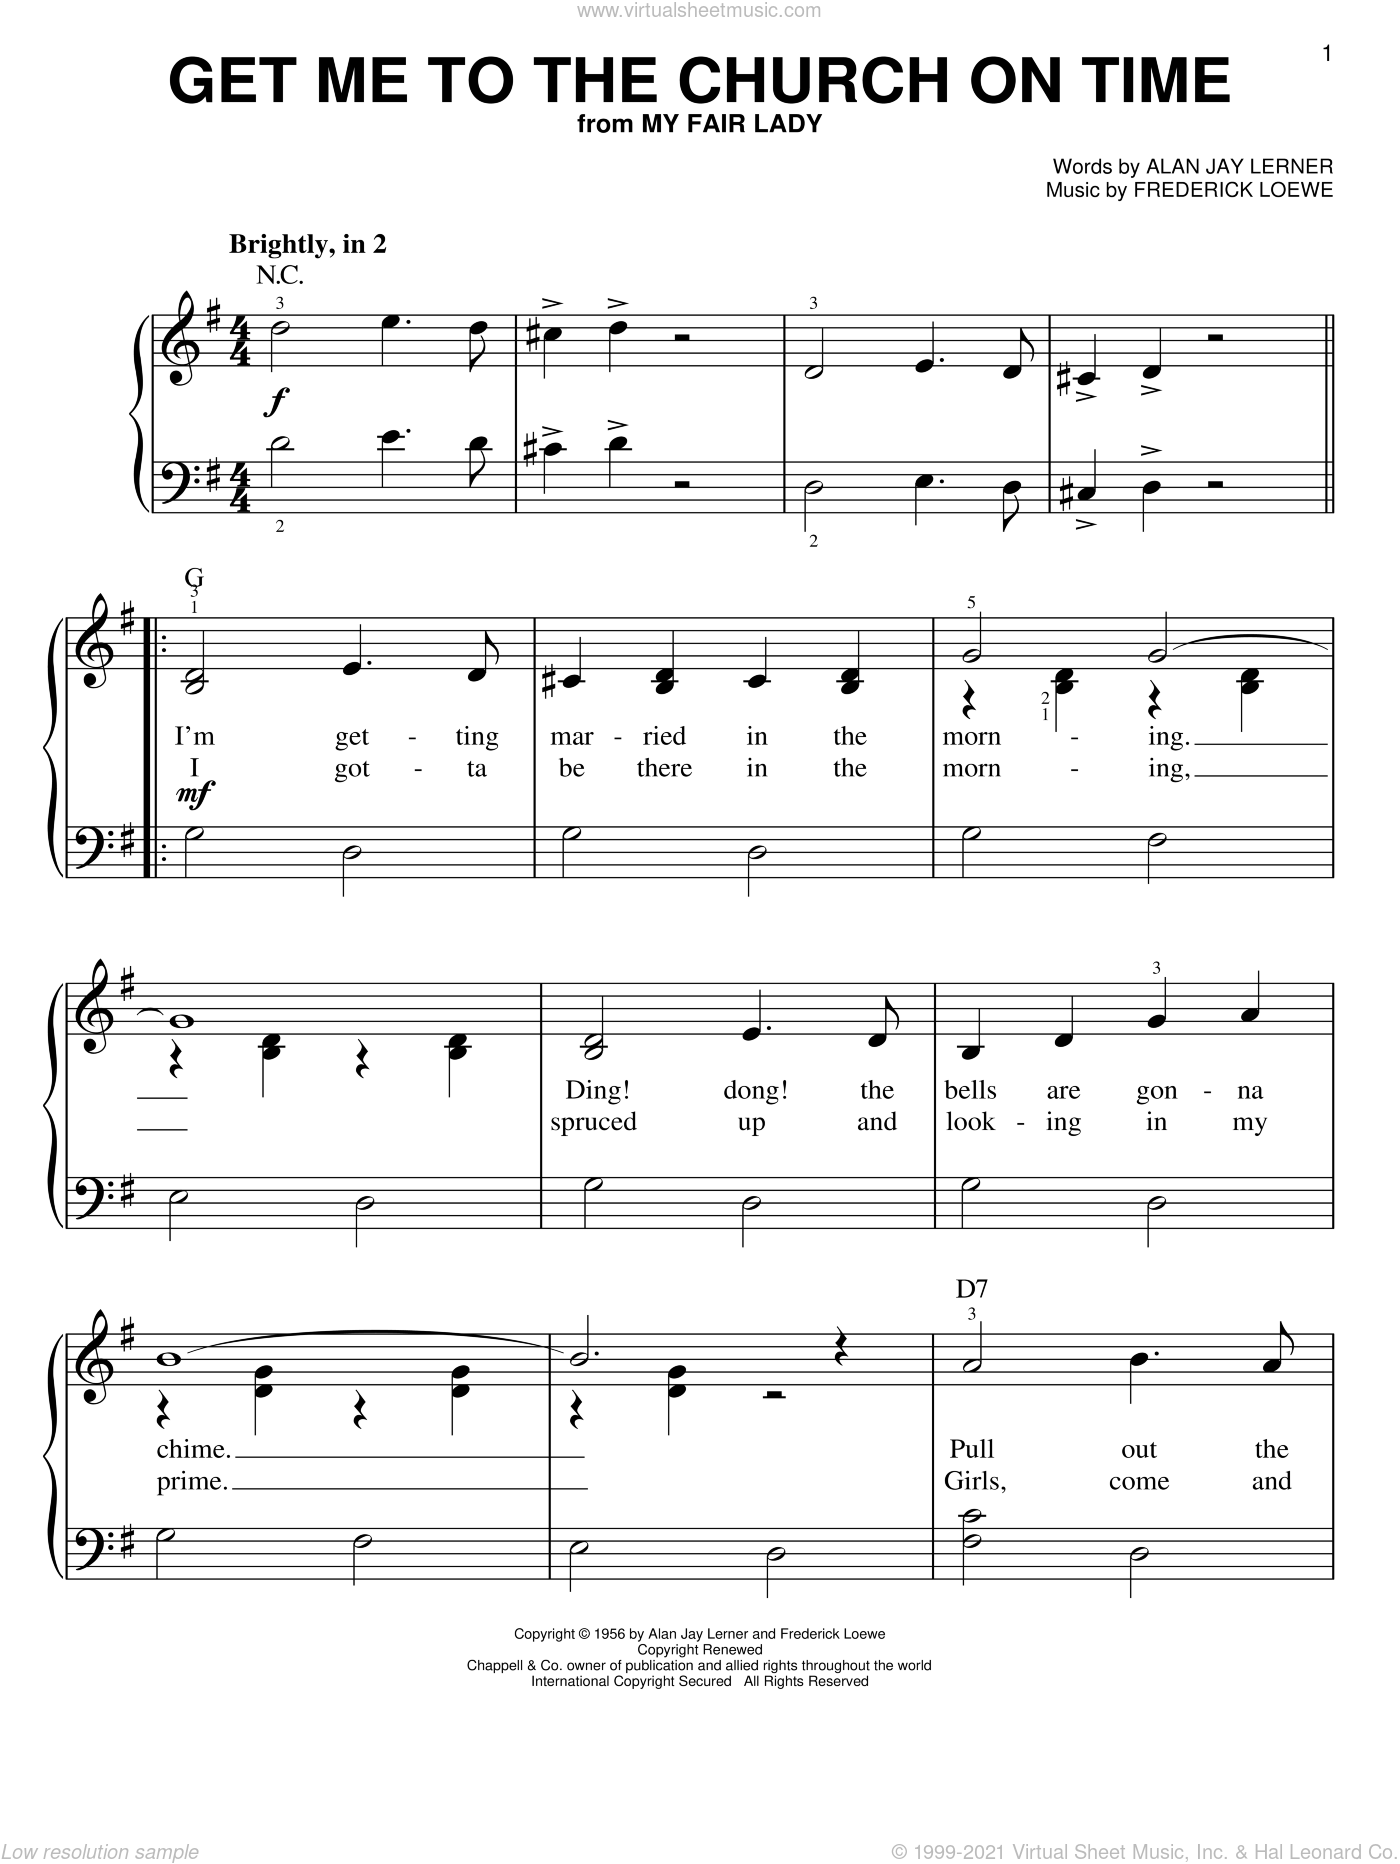 Get Me To The Church On Time sheet music for piano solo by Frederick Loewe